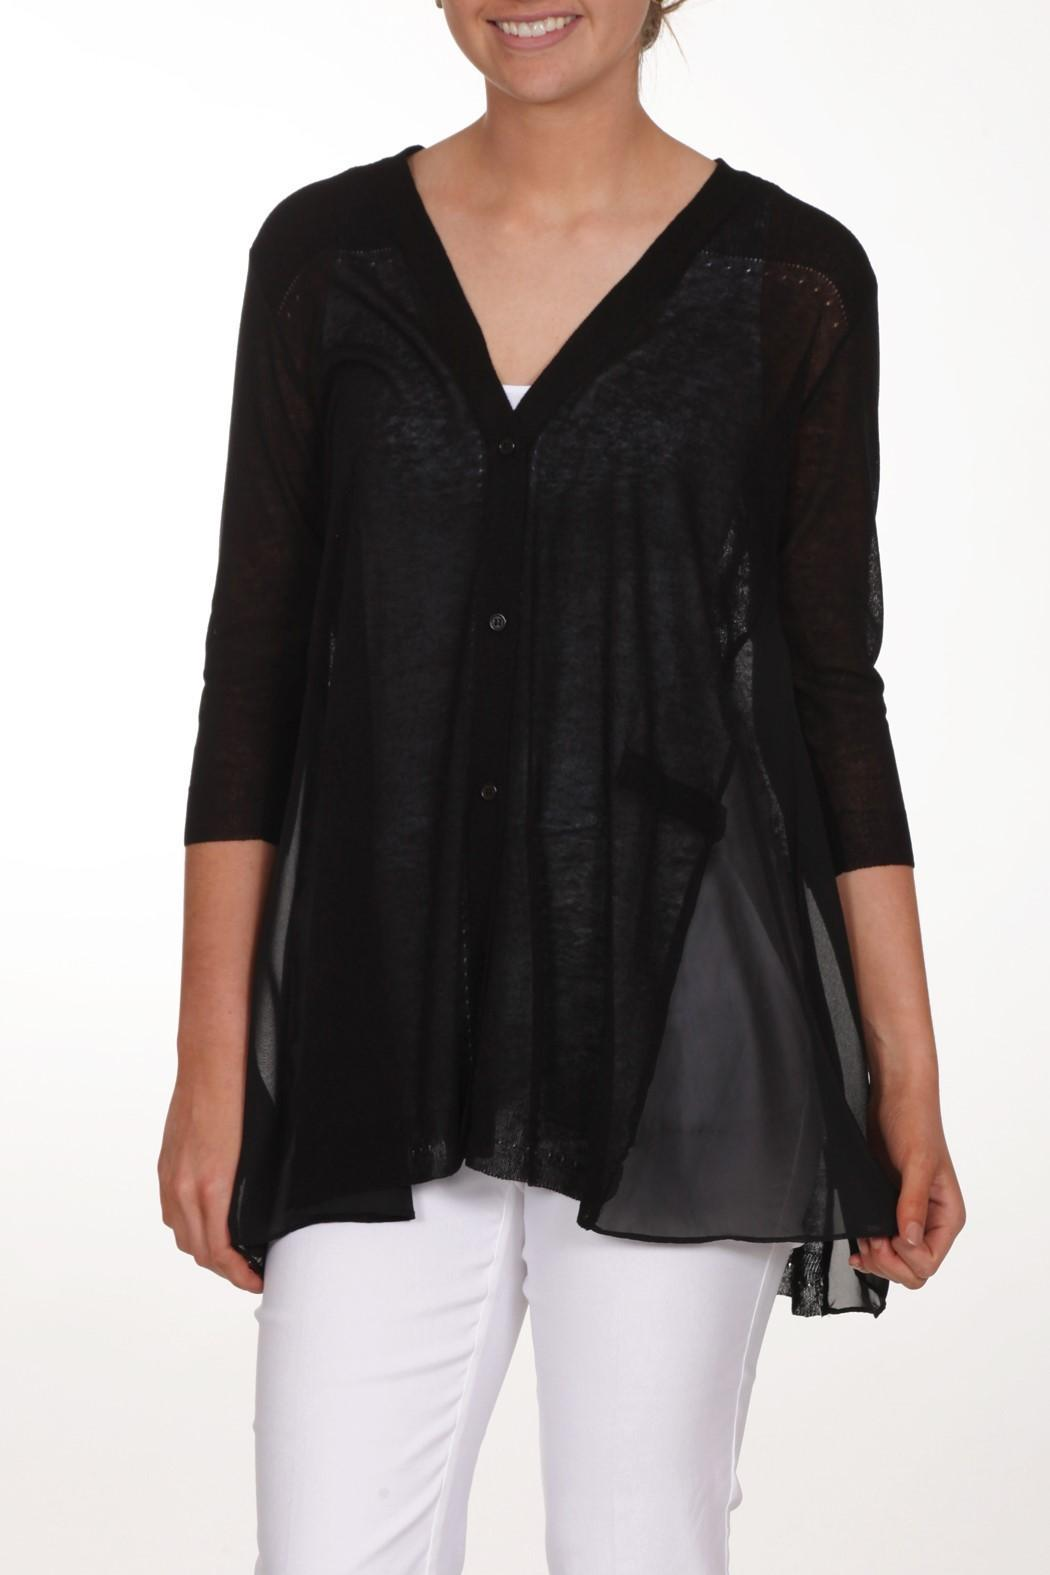 Parkhurst Black Knit Cardigan from Iowa by Shabby & Chic, LLC ...